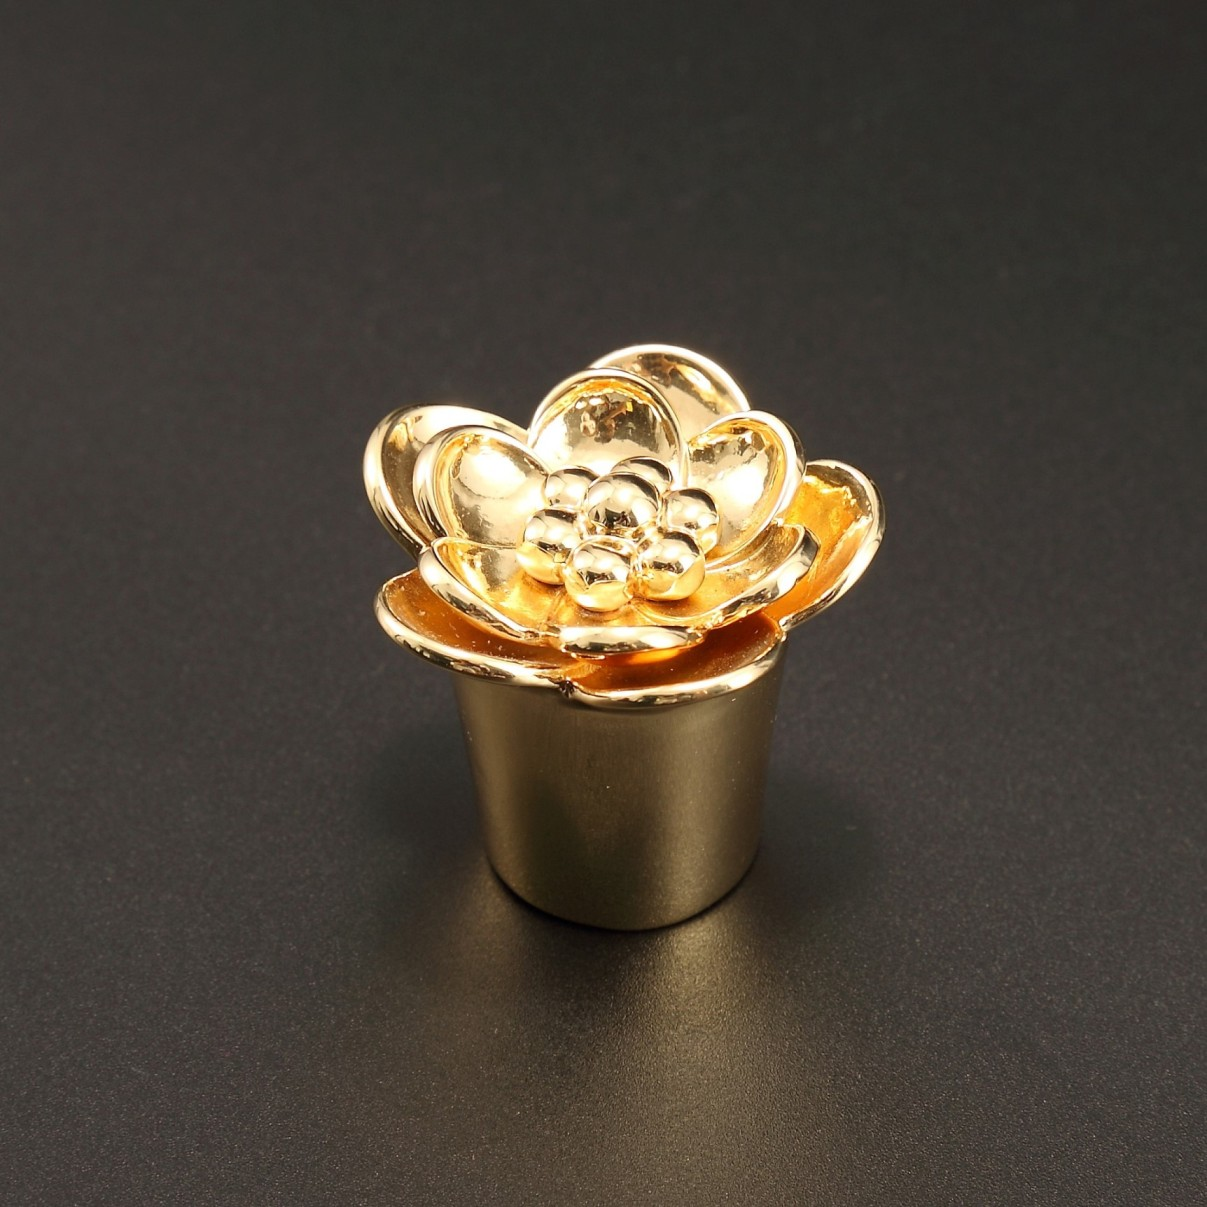 Perfume bottle cap